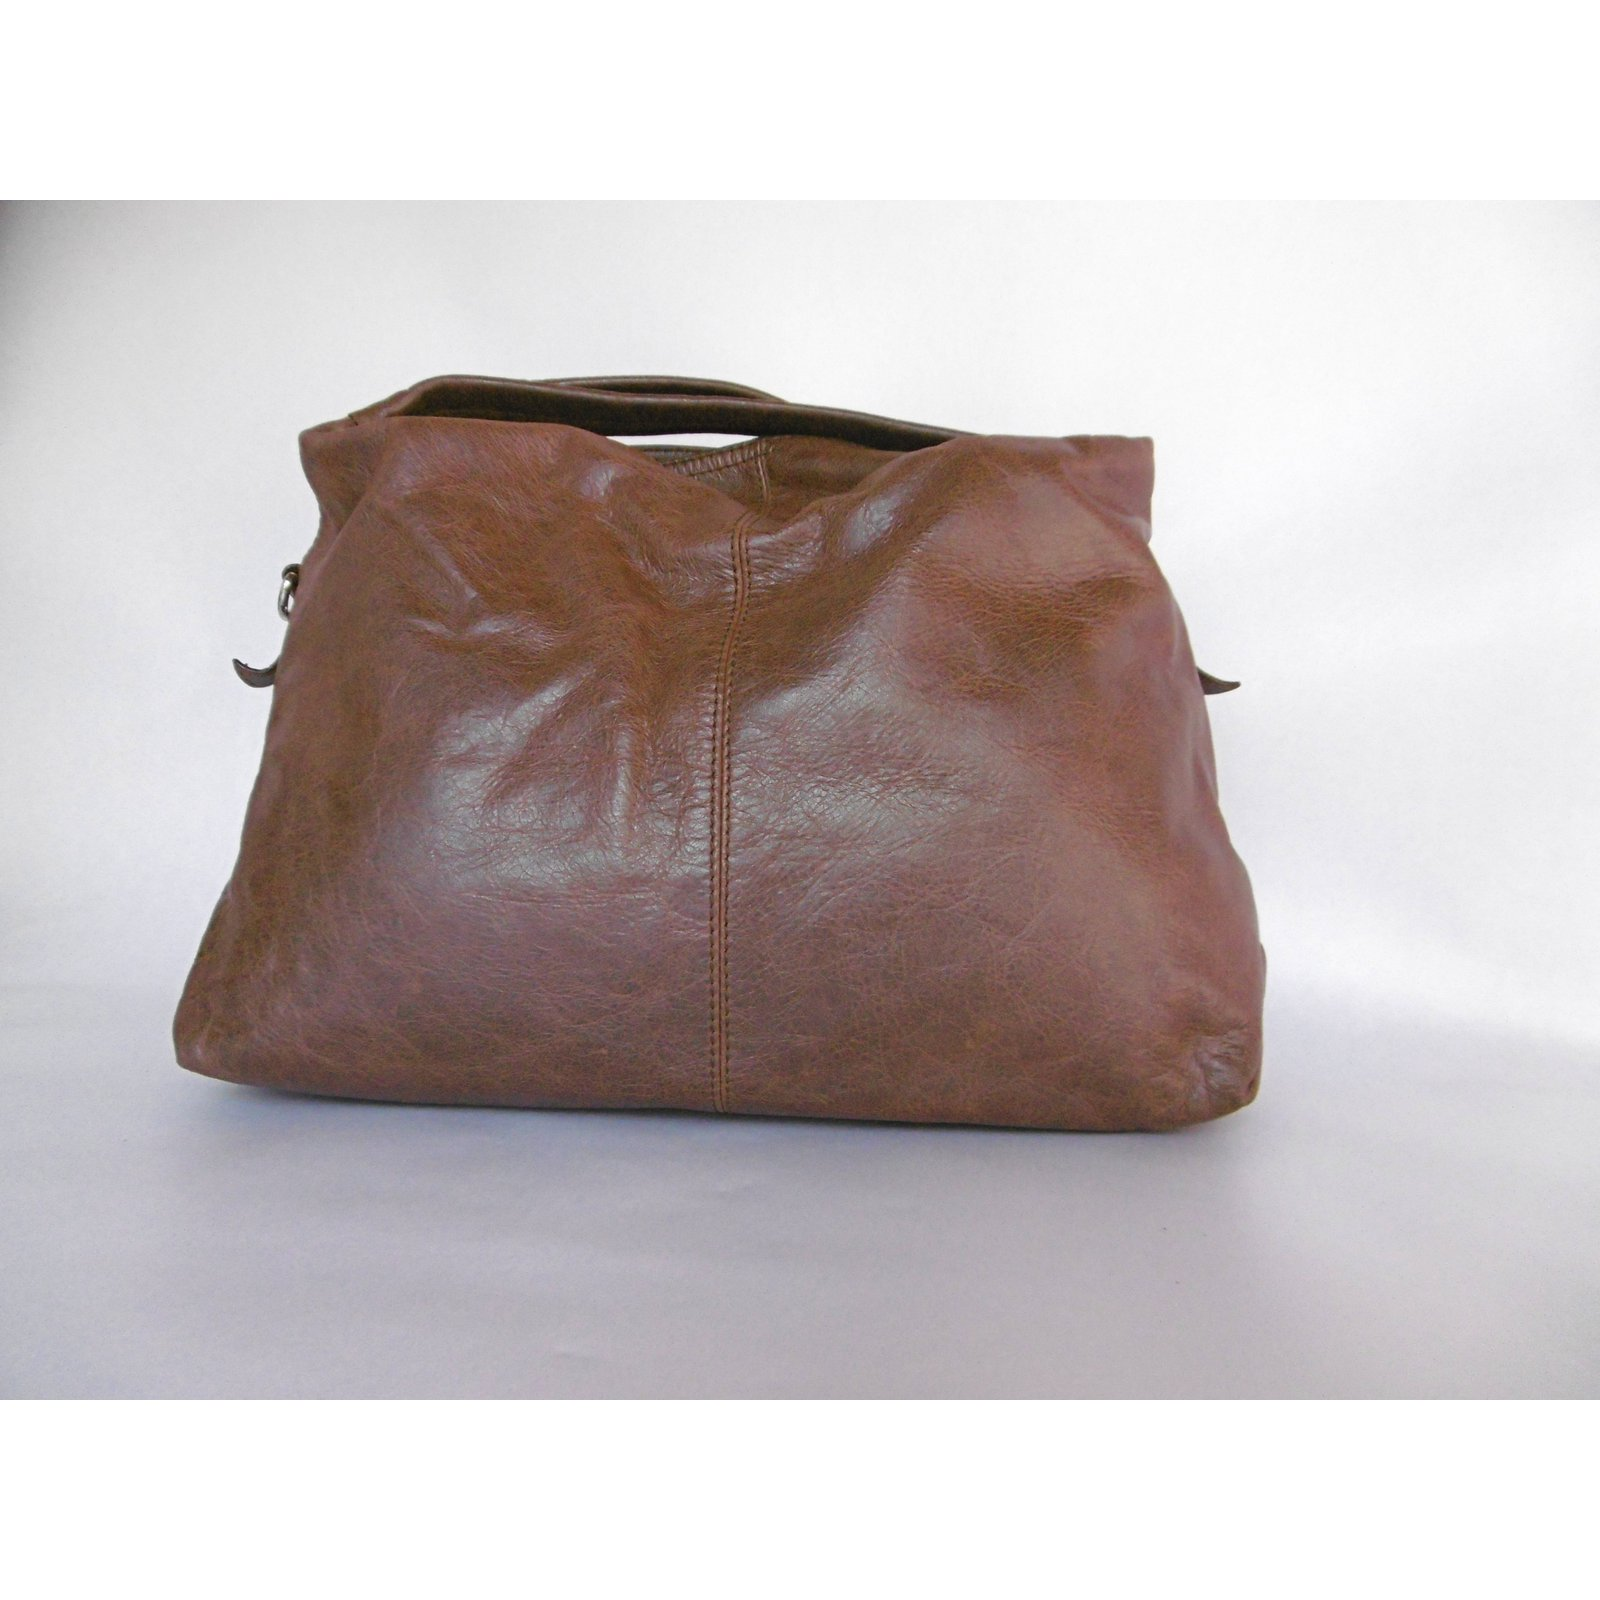 f3e81c8109d3 Balenciaga Balenciaga Leather Handbag Handbags Leather Brown ref.77588 -  Joli Closet